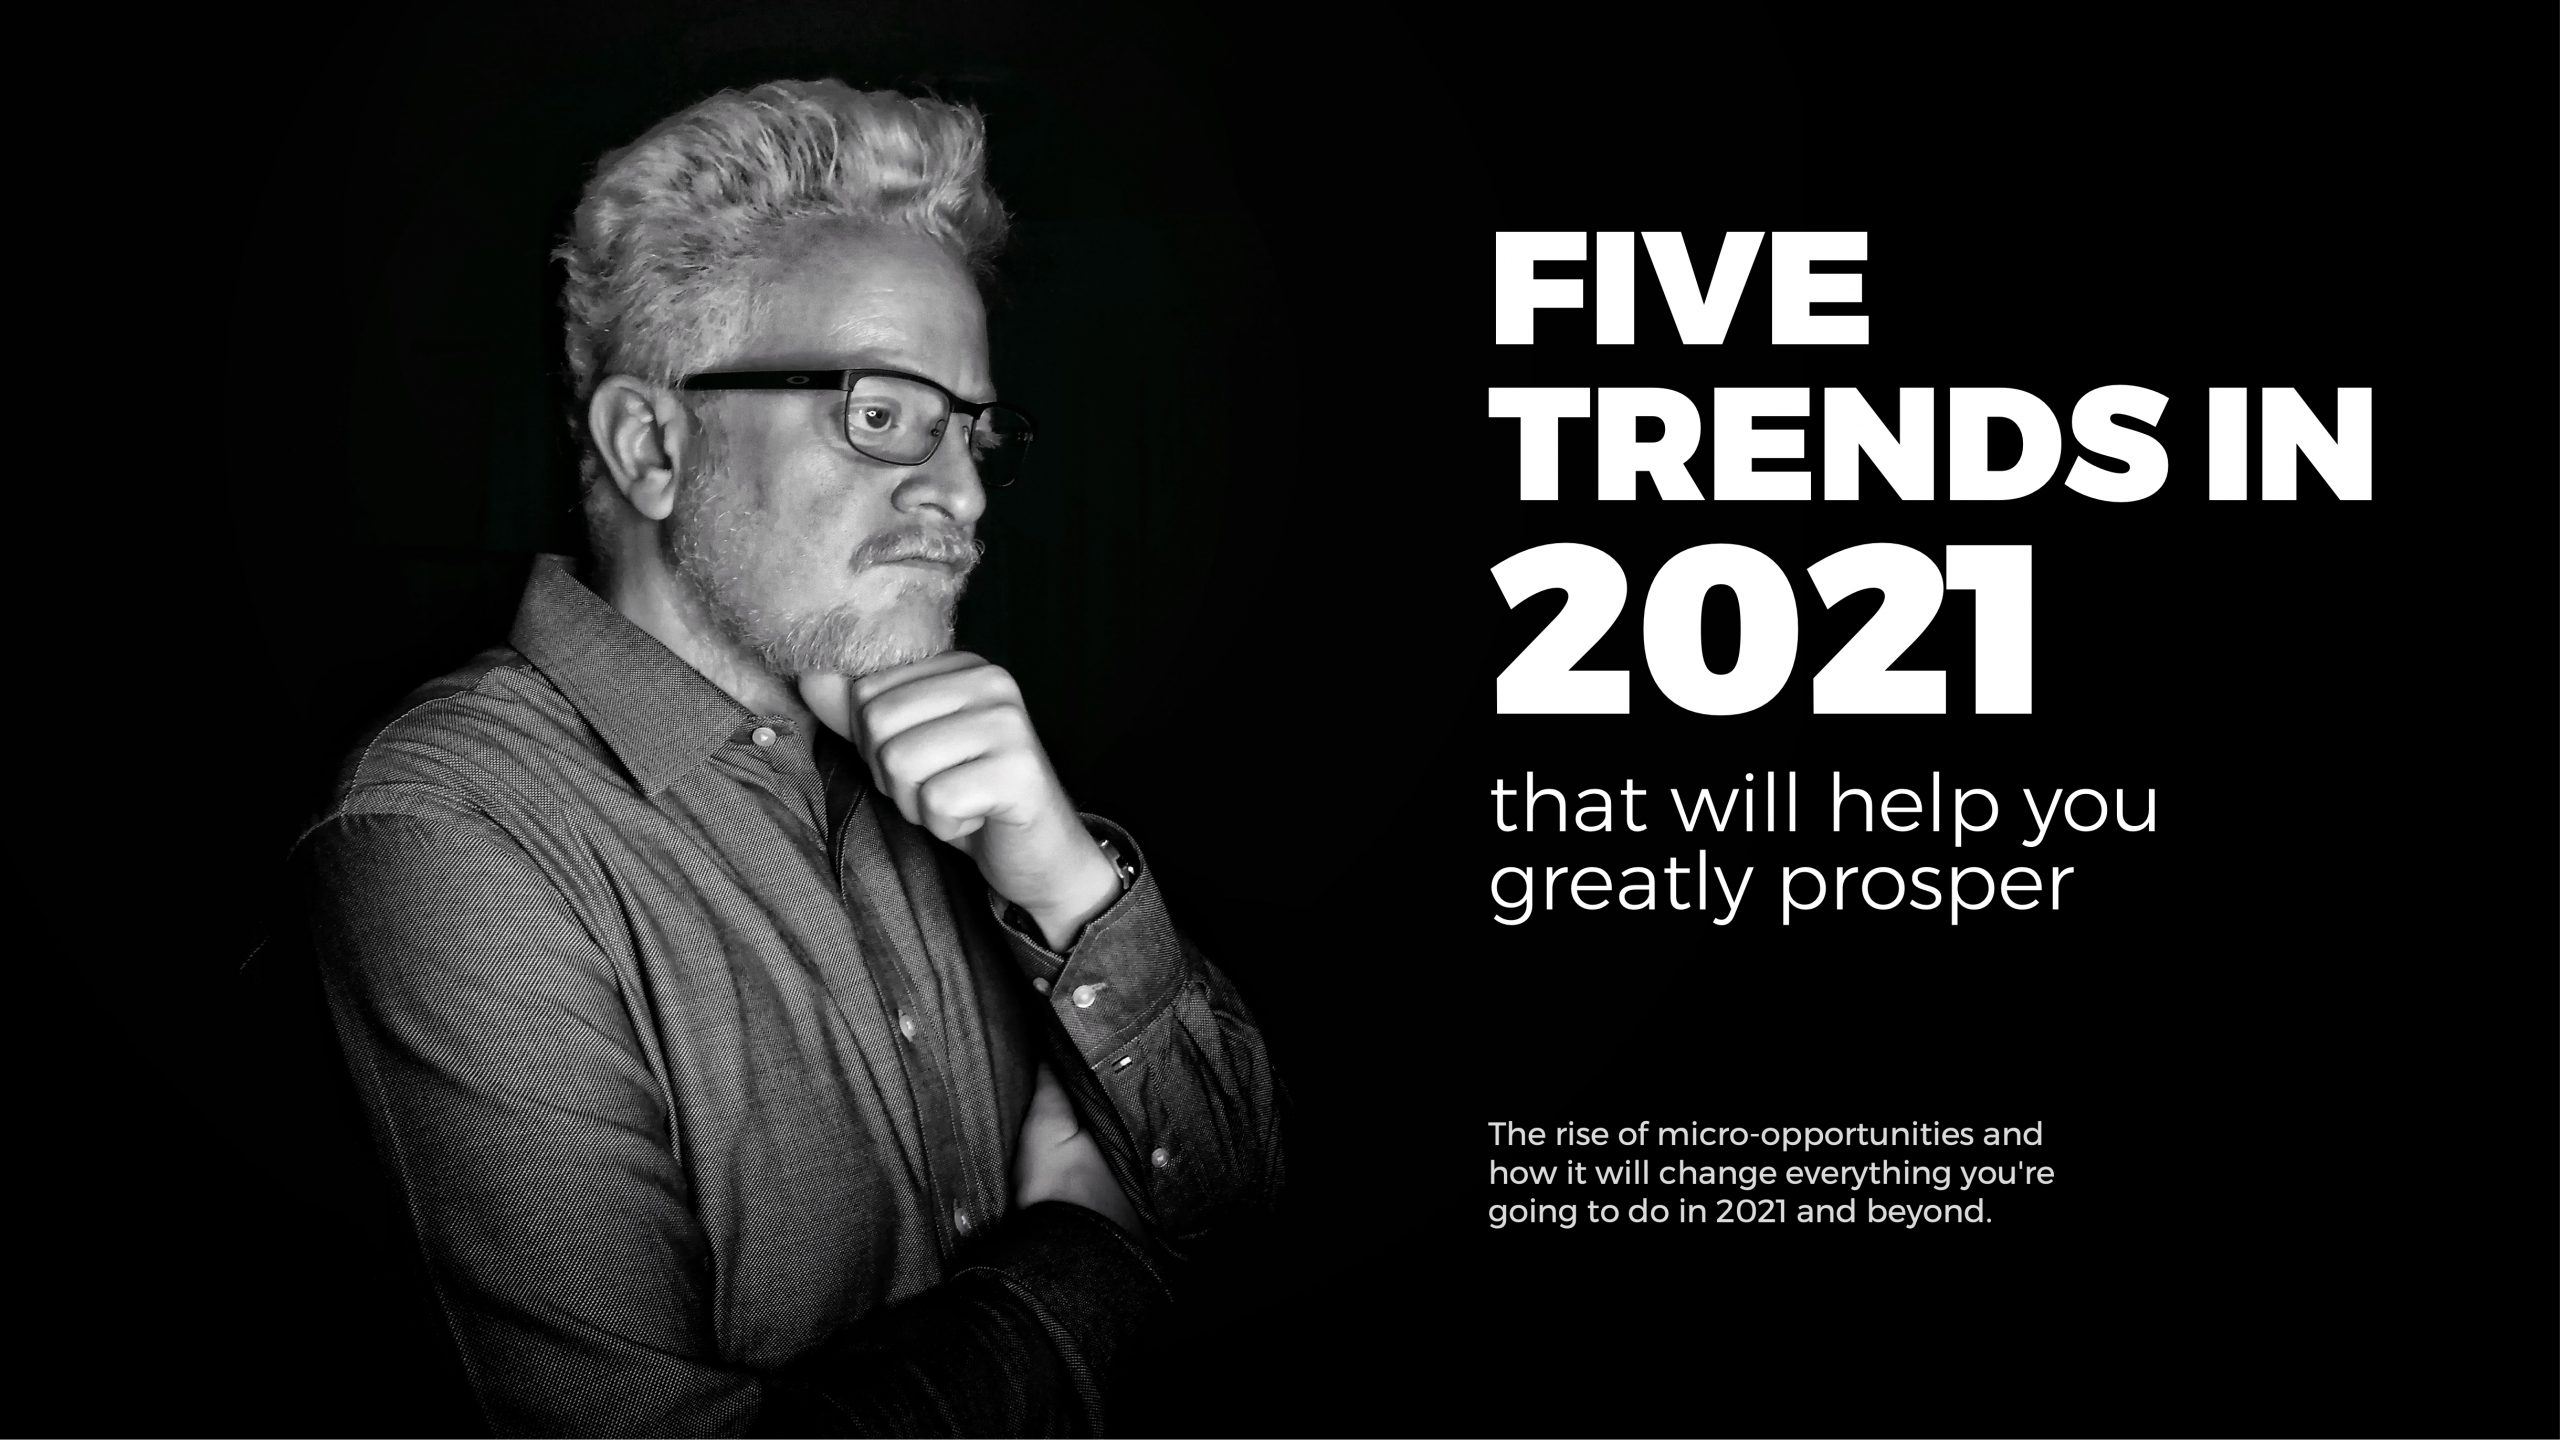 Five trends in 7 that will help you greatly prosper - Nader Sabry